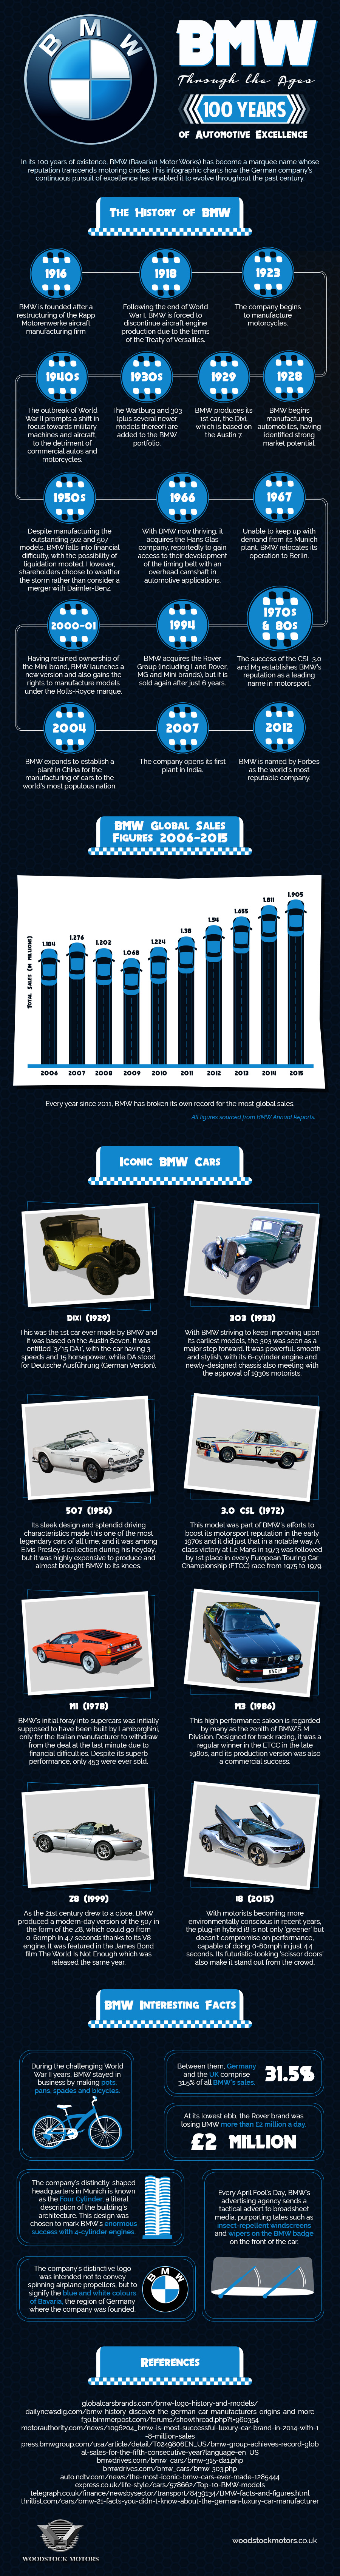 BMW Through the Ages-100 Years of Automotive Excellence